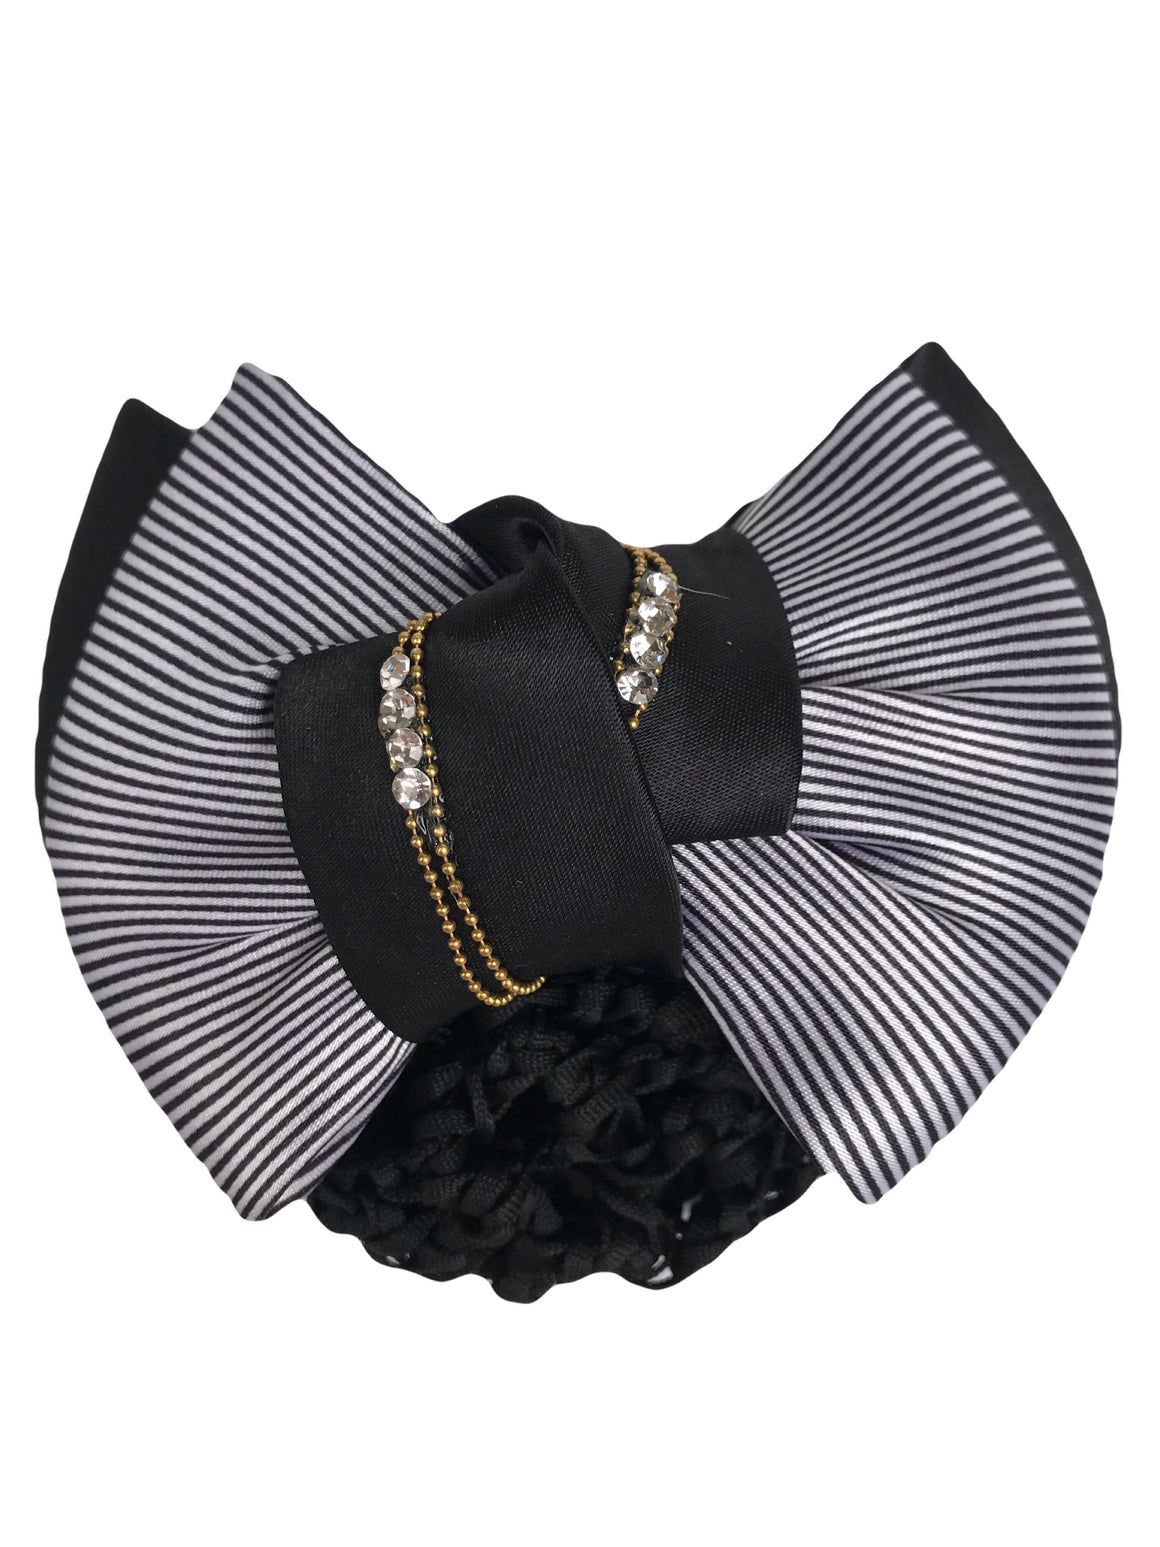 Black White Lady Show Bow - Leveza